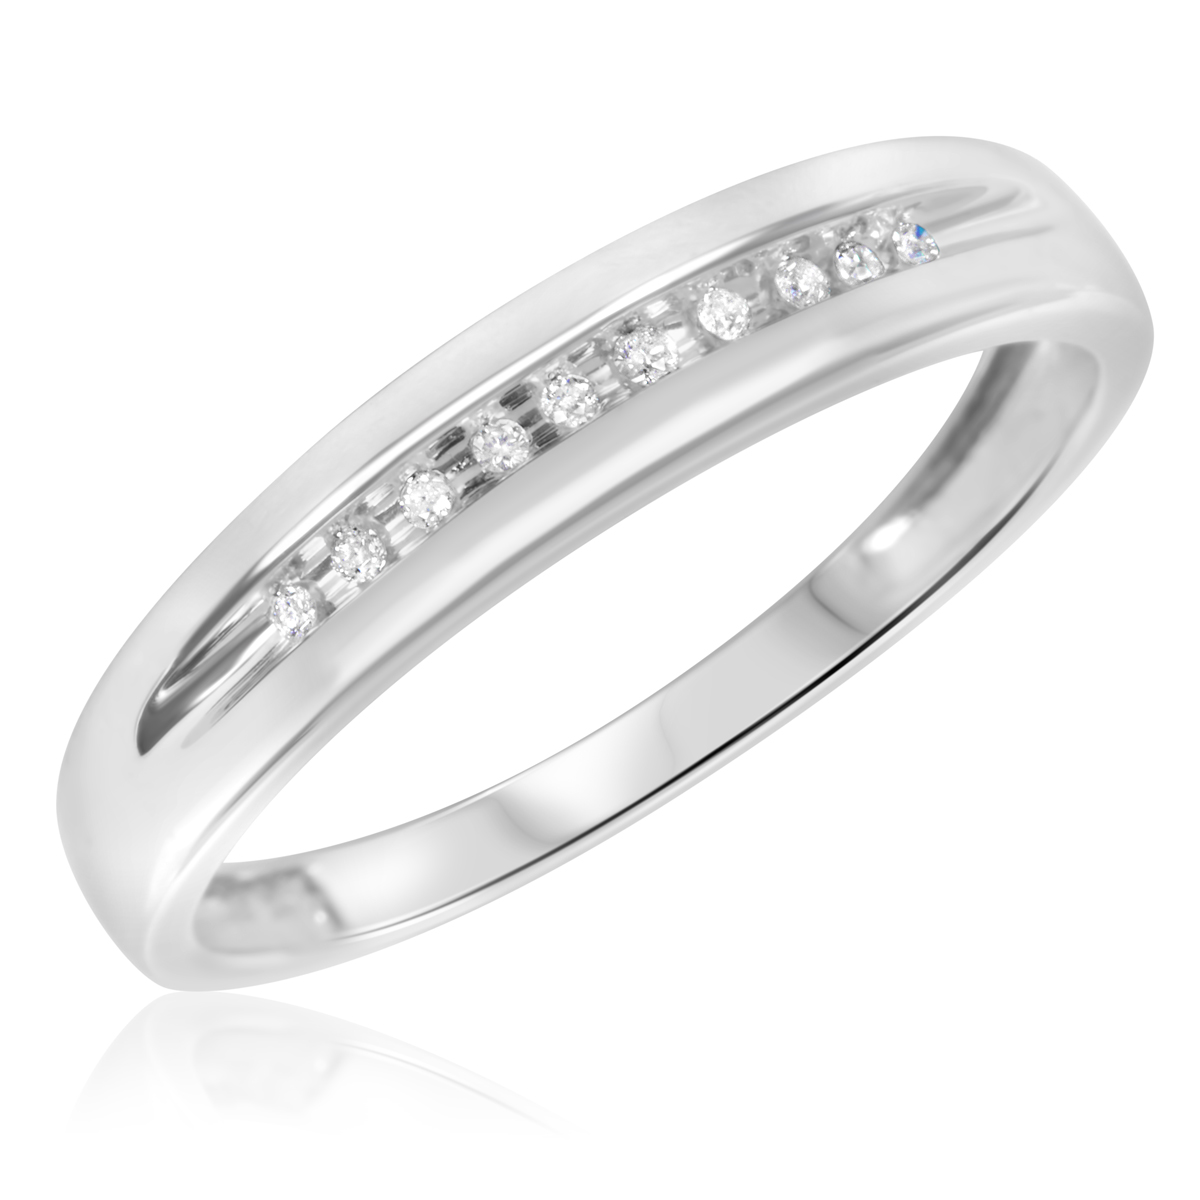 1 10 Carat TW Diamond His And Hers Wedding Rings 10K White Gold